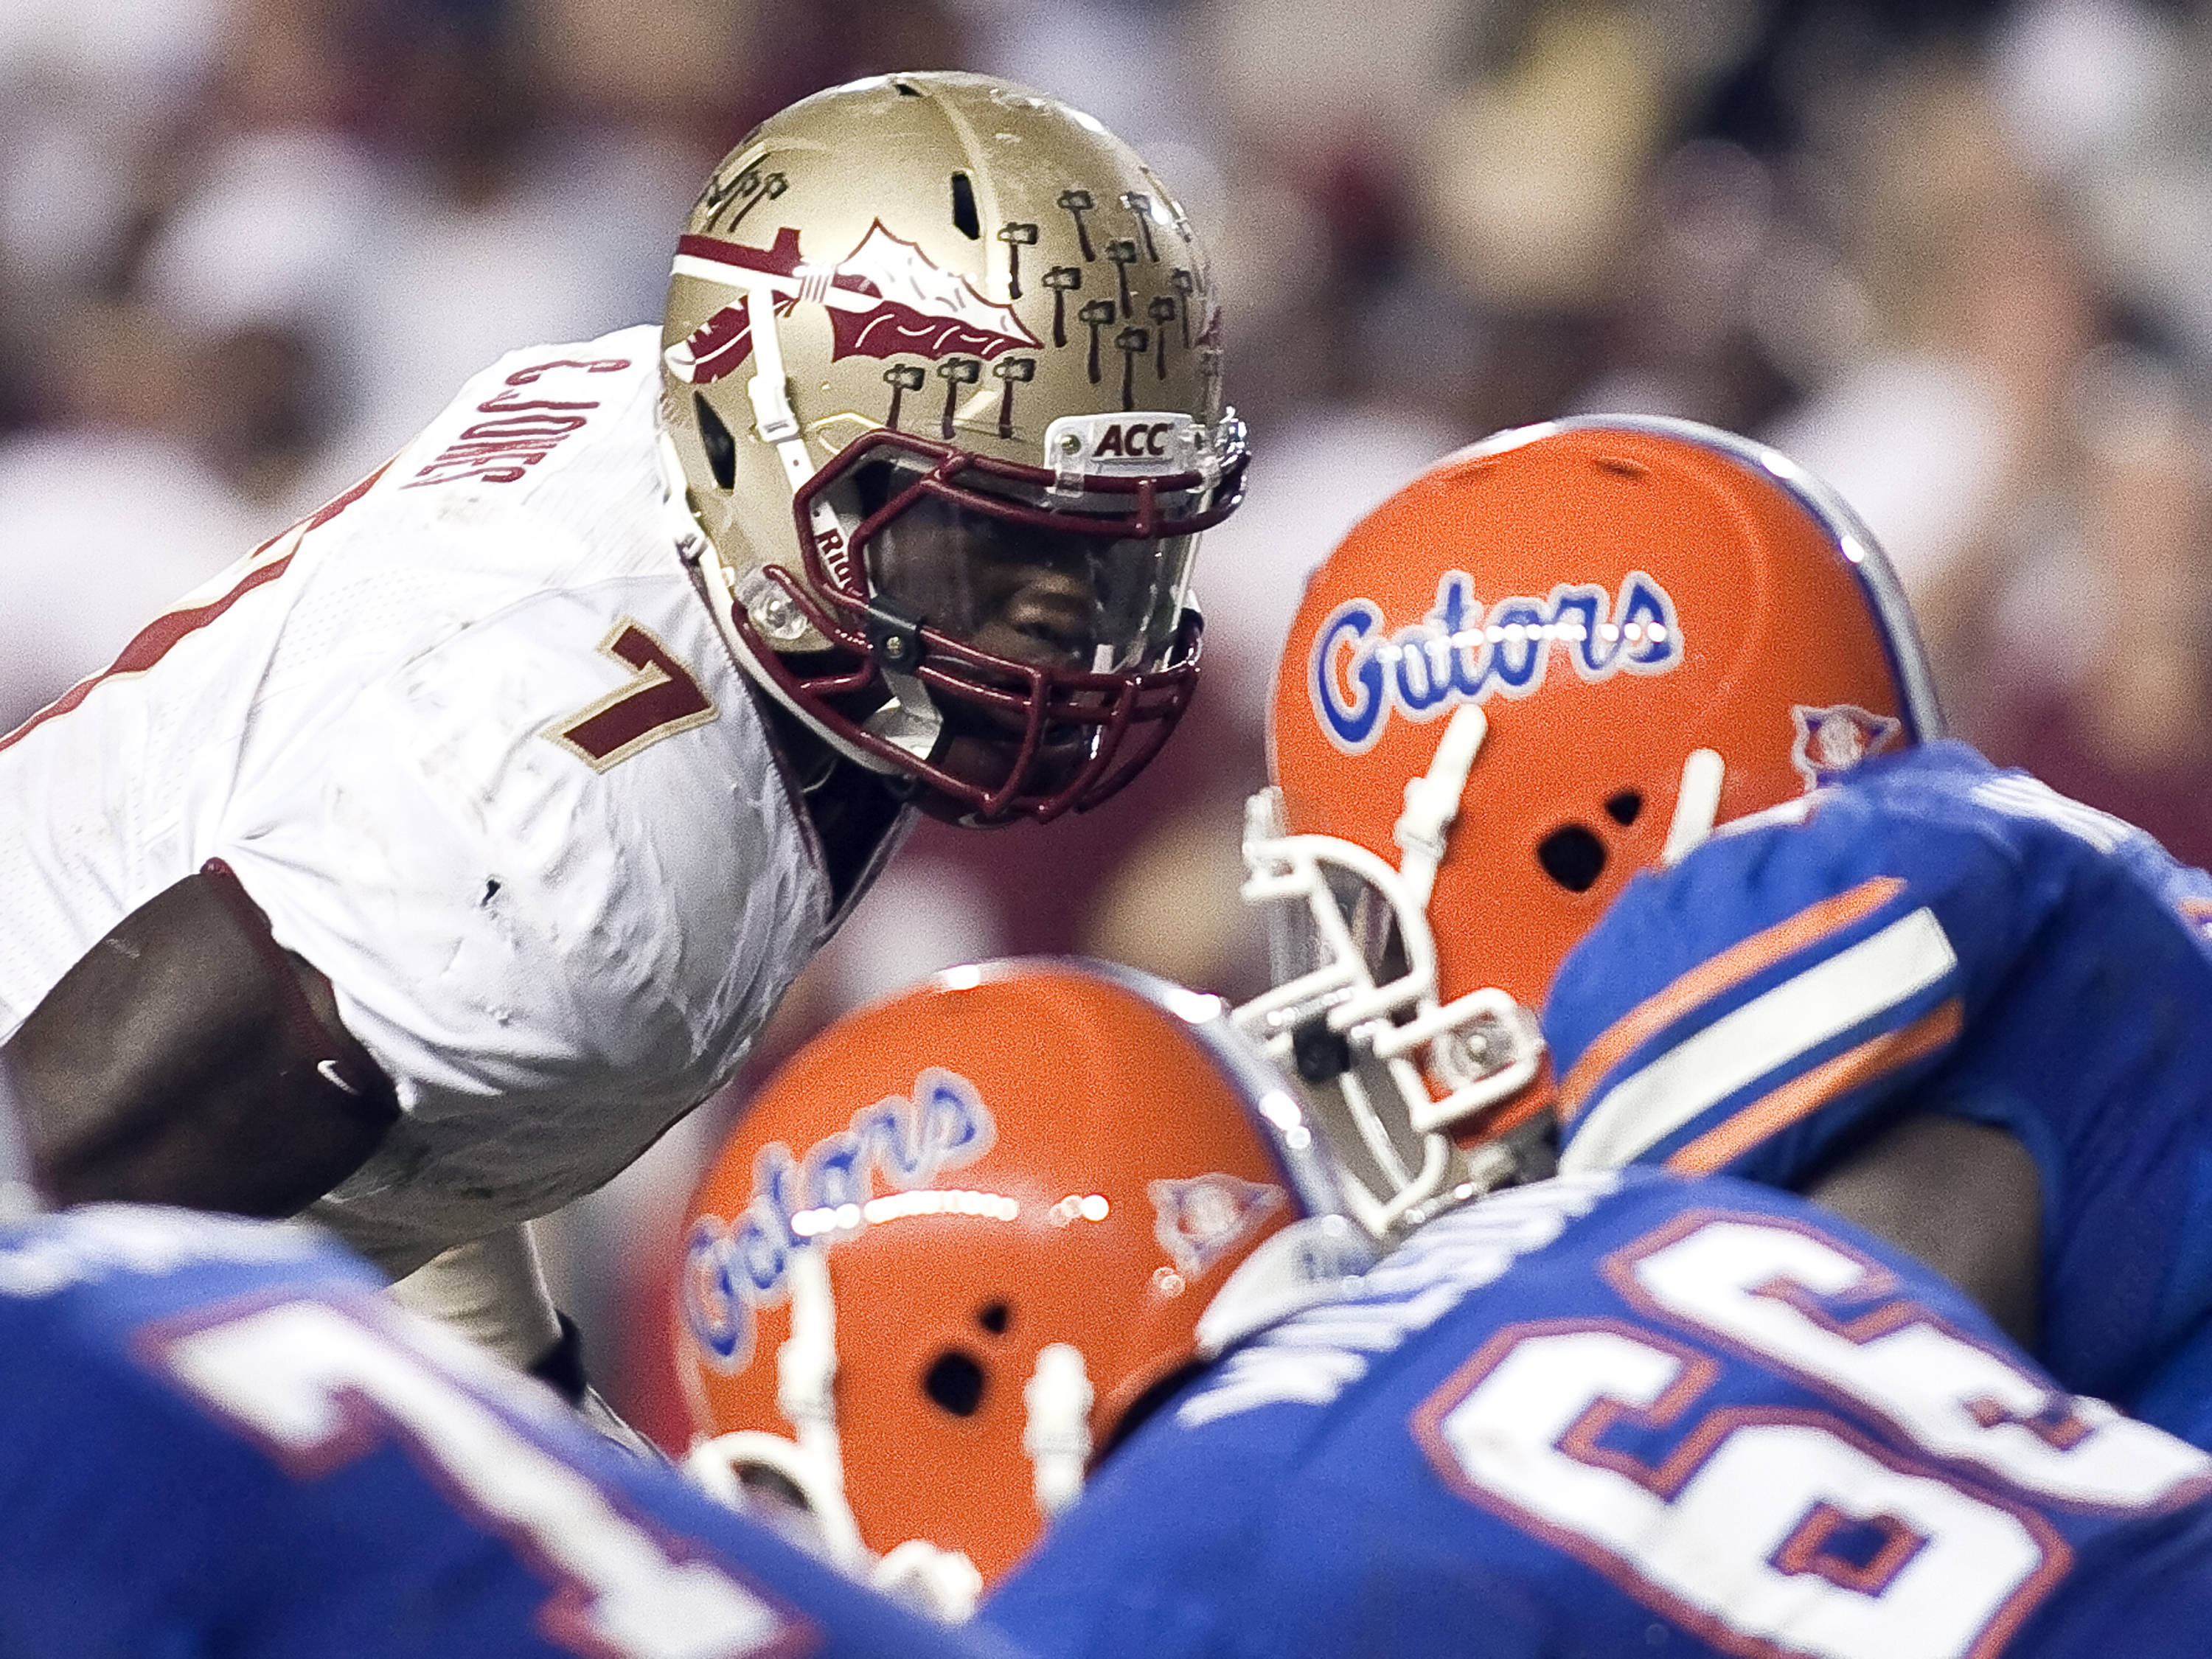 Christian Jones (7) ready for a defensive rush, FSU vs Florida, 11/26/2011